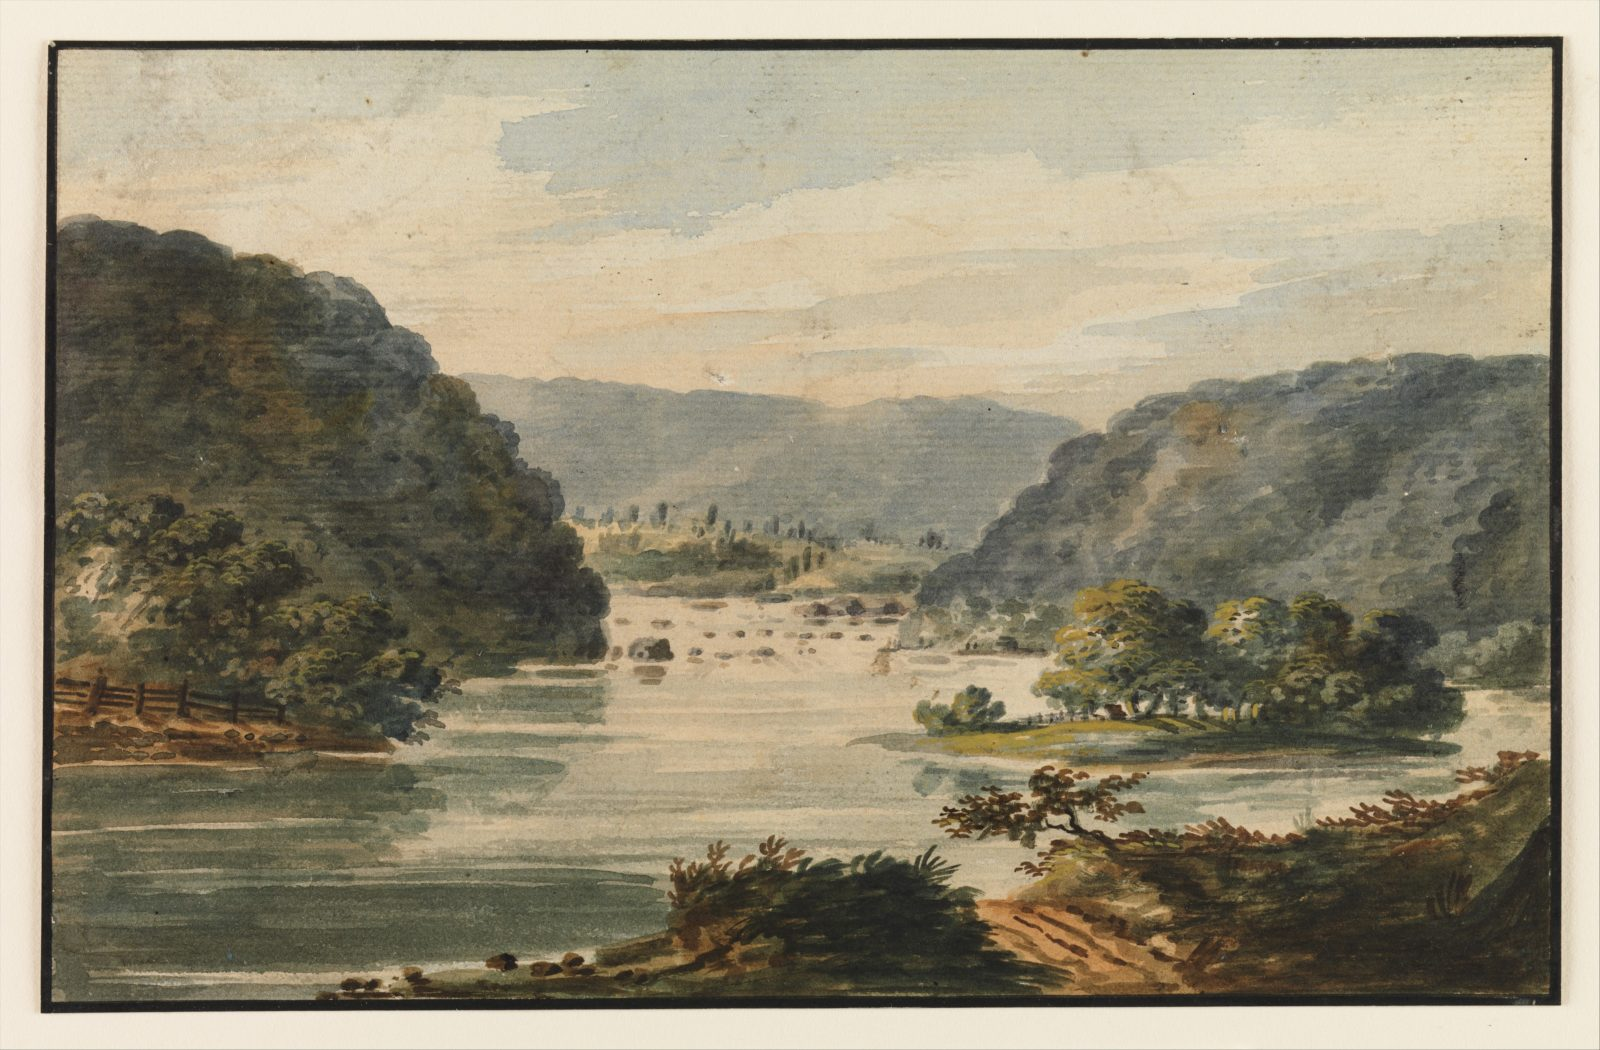 A View of the Potomac at Harpers Ferry